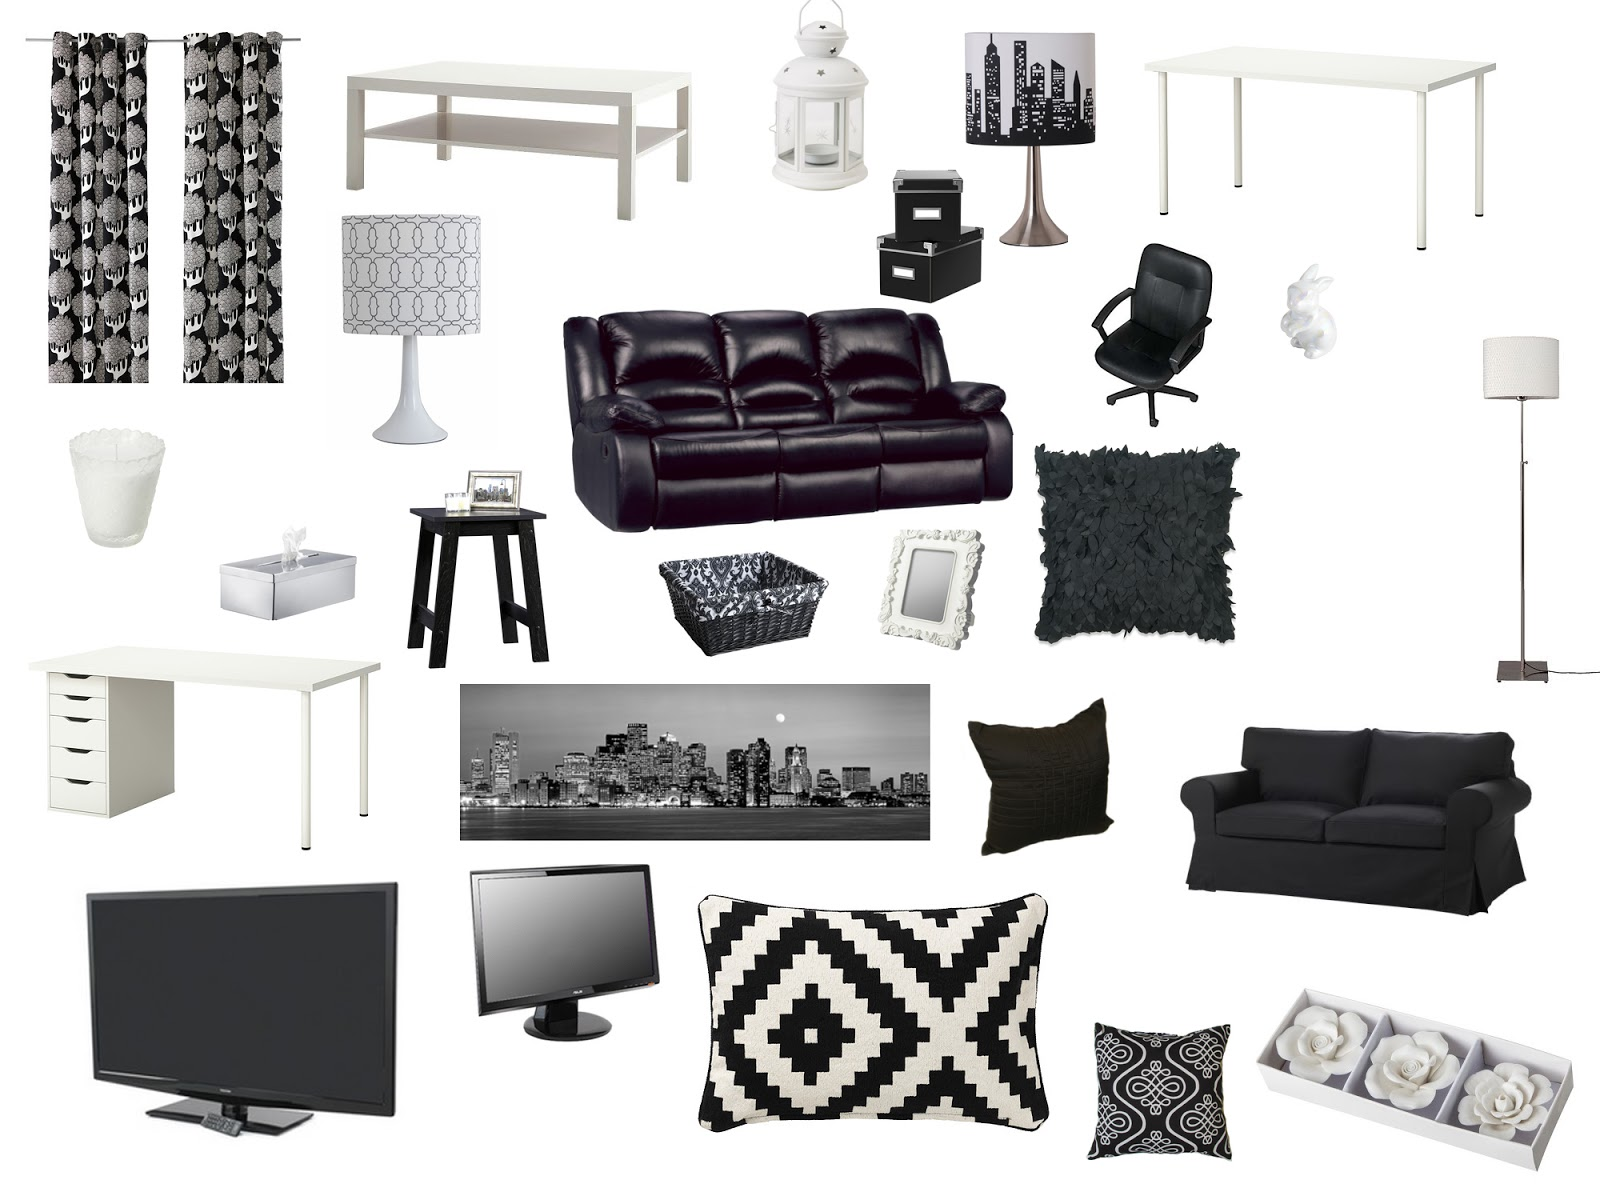 Luhivy's favorite things: Black and White Living Room Home ...